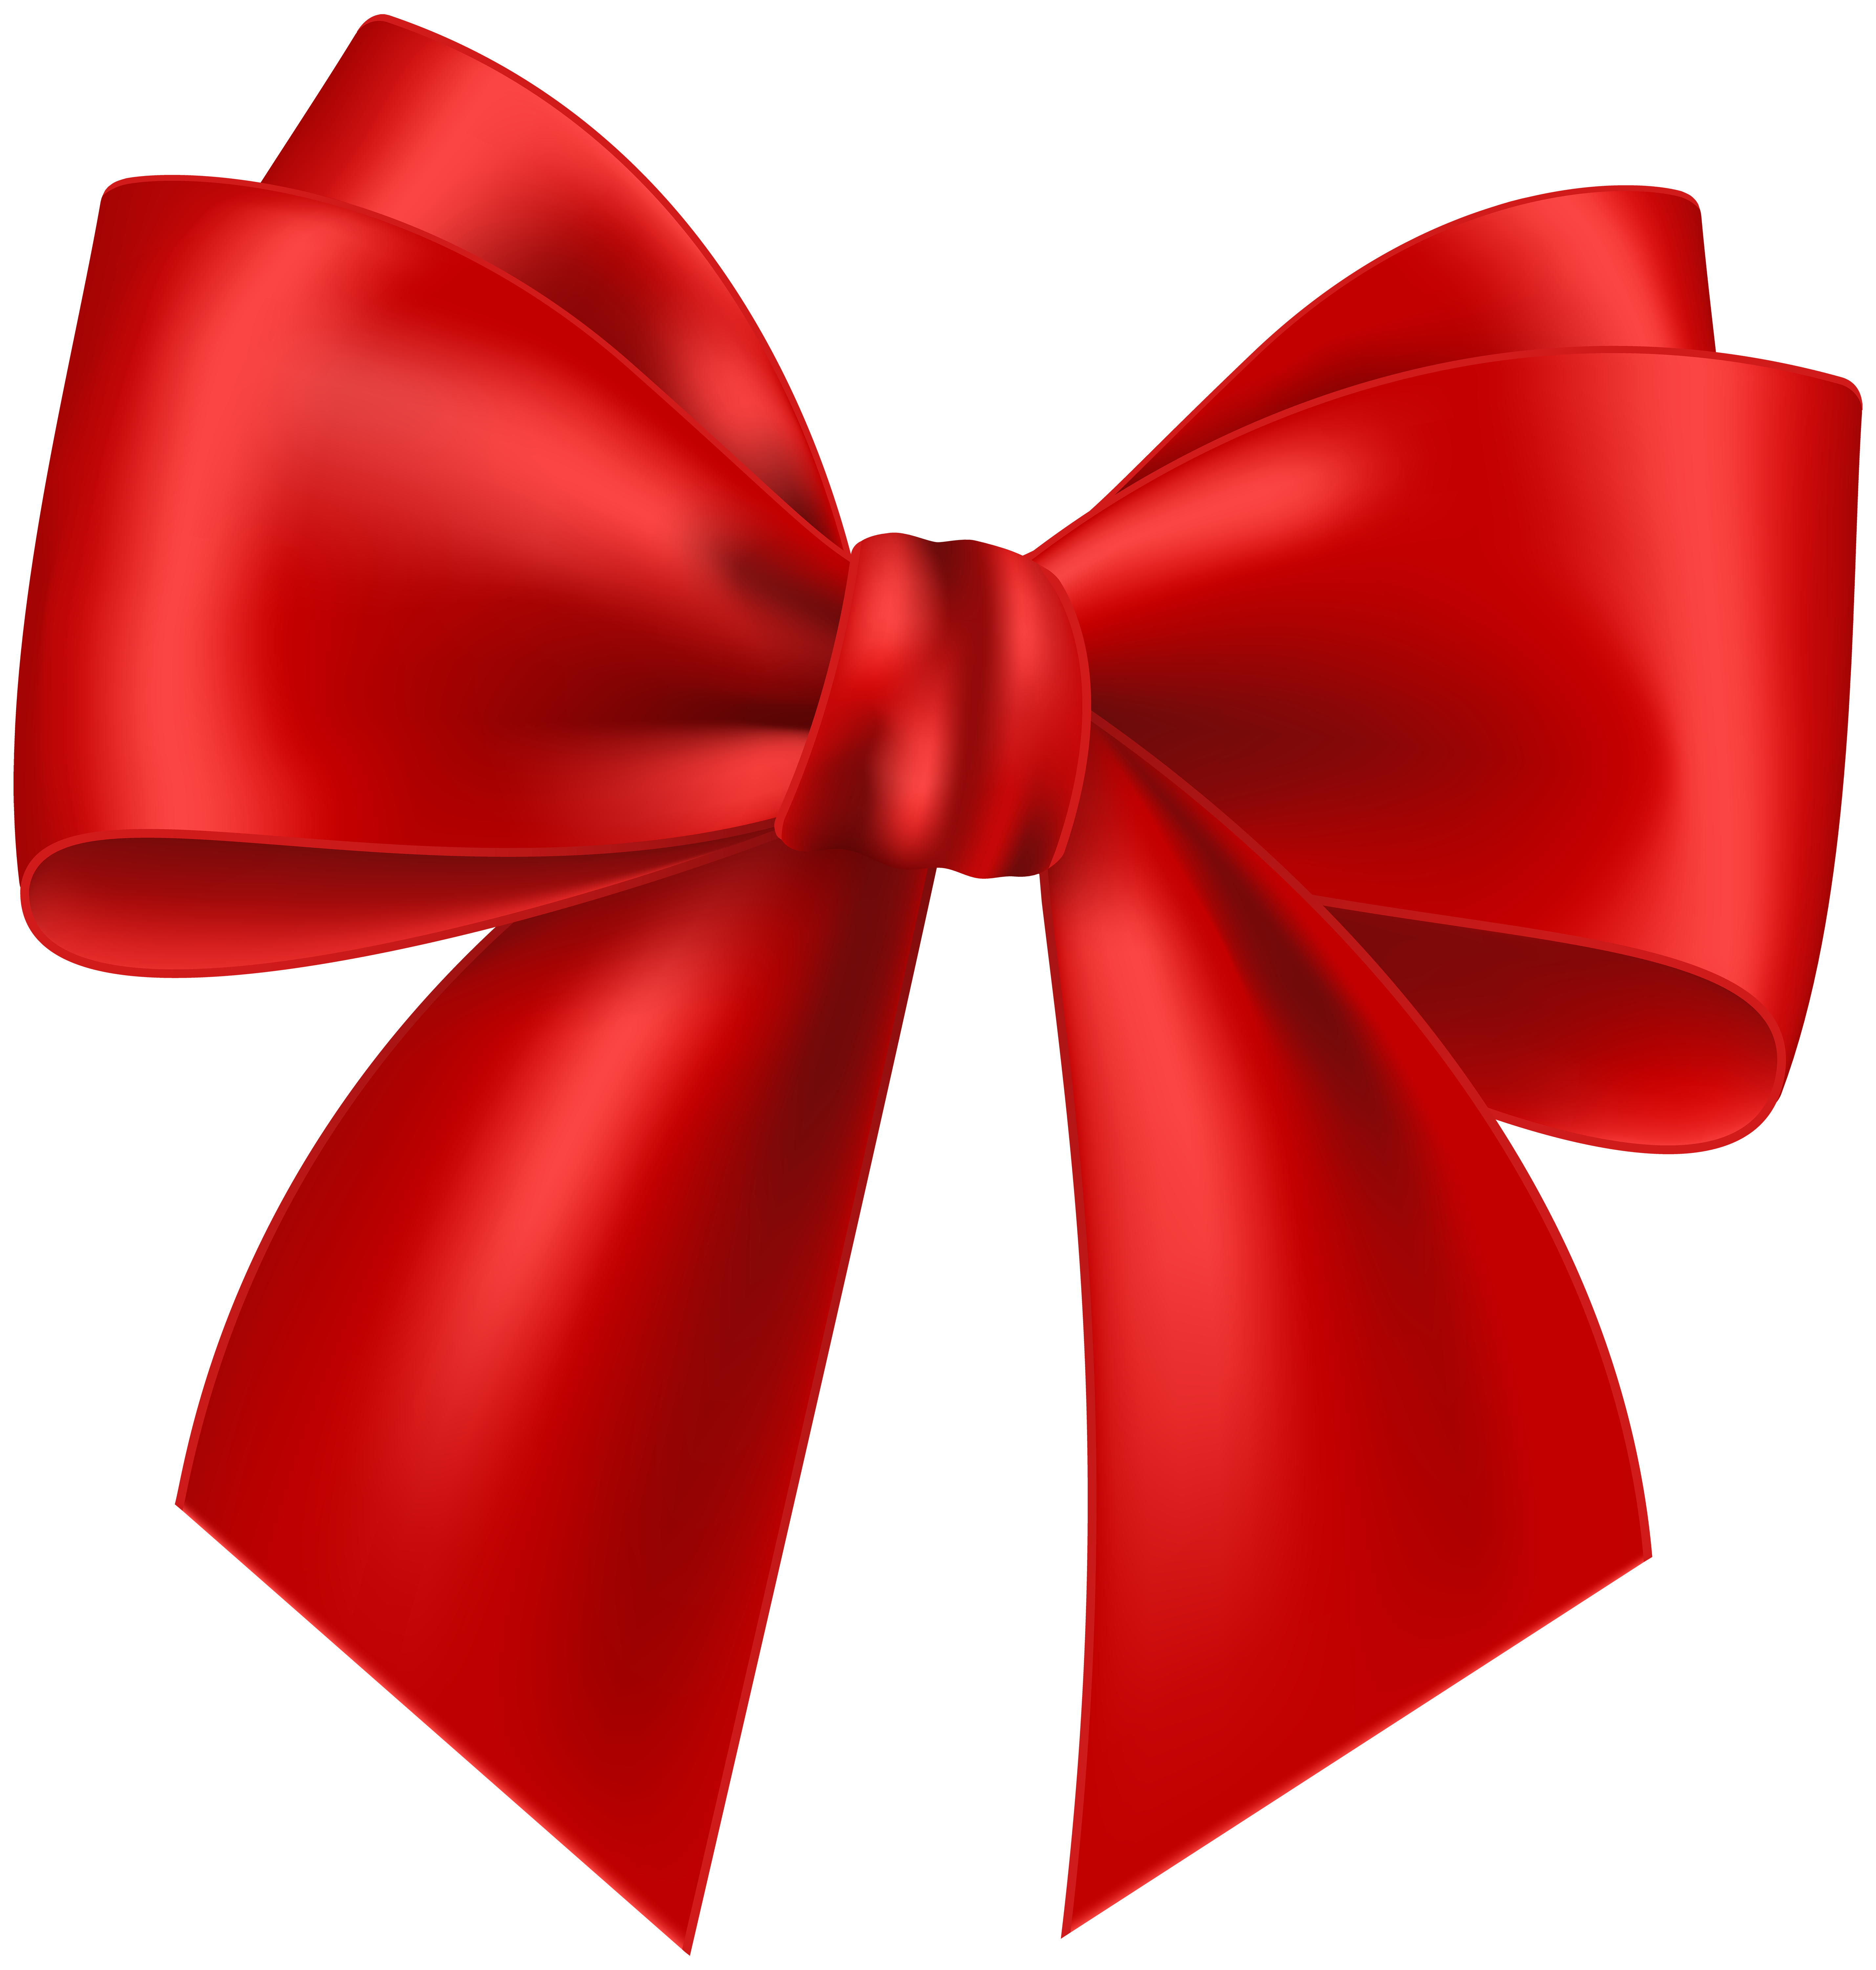 pin by shamil muradli on image pinterest art images image and art rh pinterest com red bow tie clipart red bow clip art png